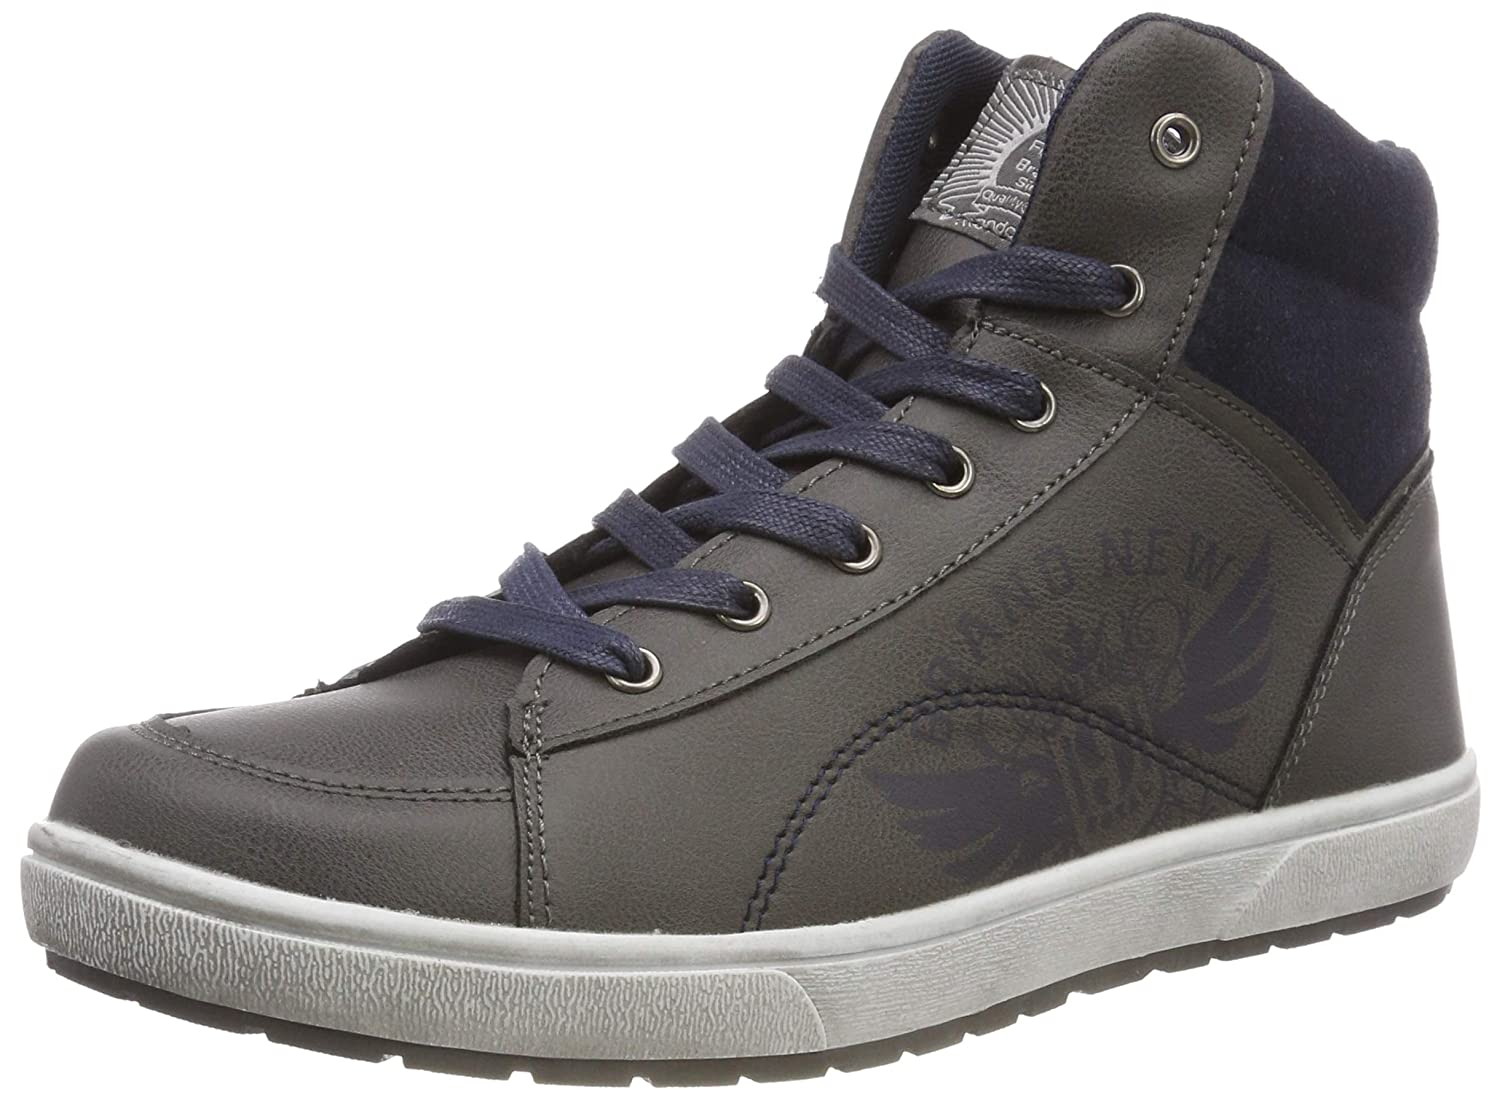 Clarks Boys' 451 063 Hi-Top Trainers Indigo